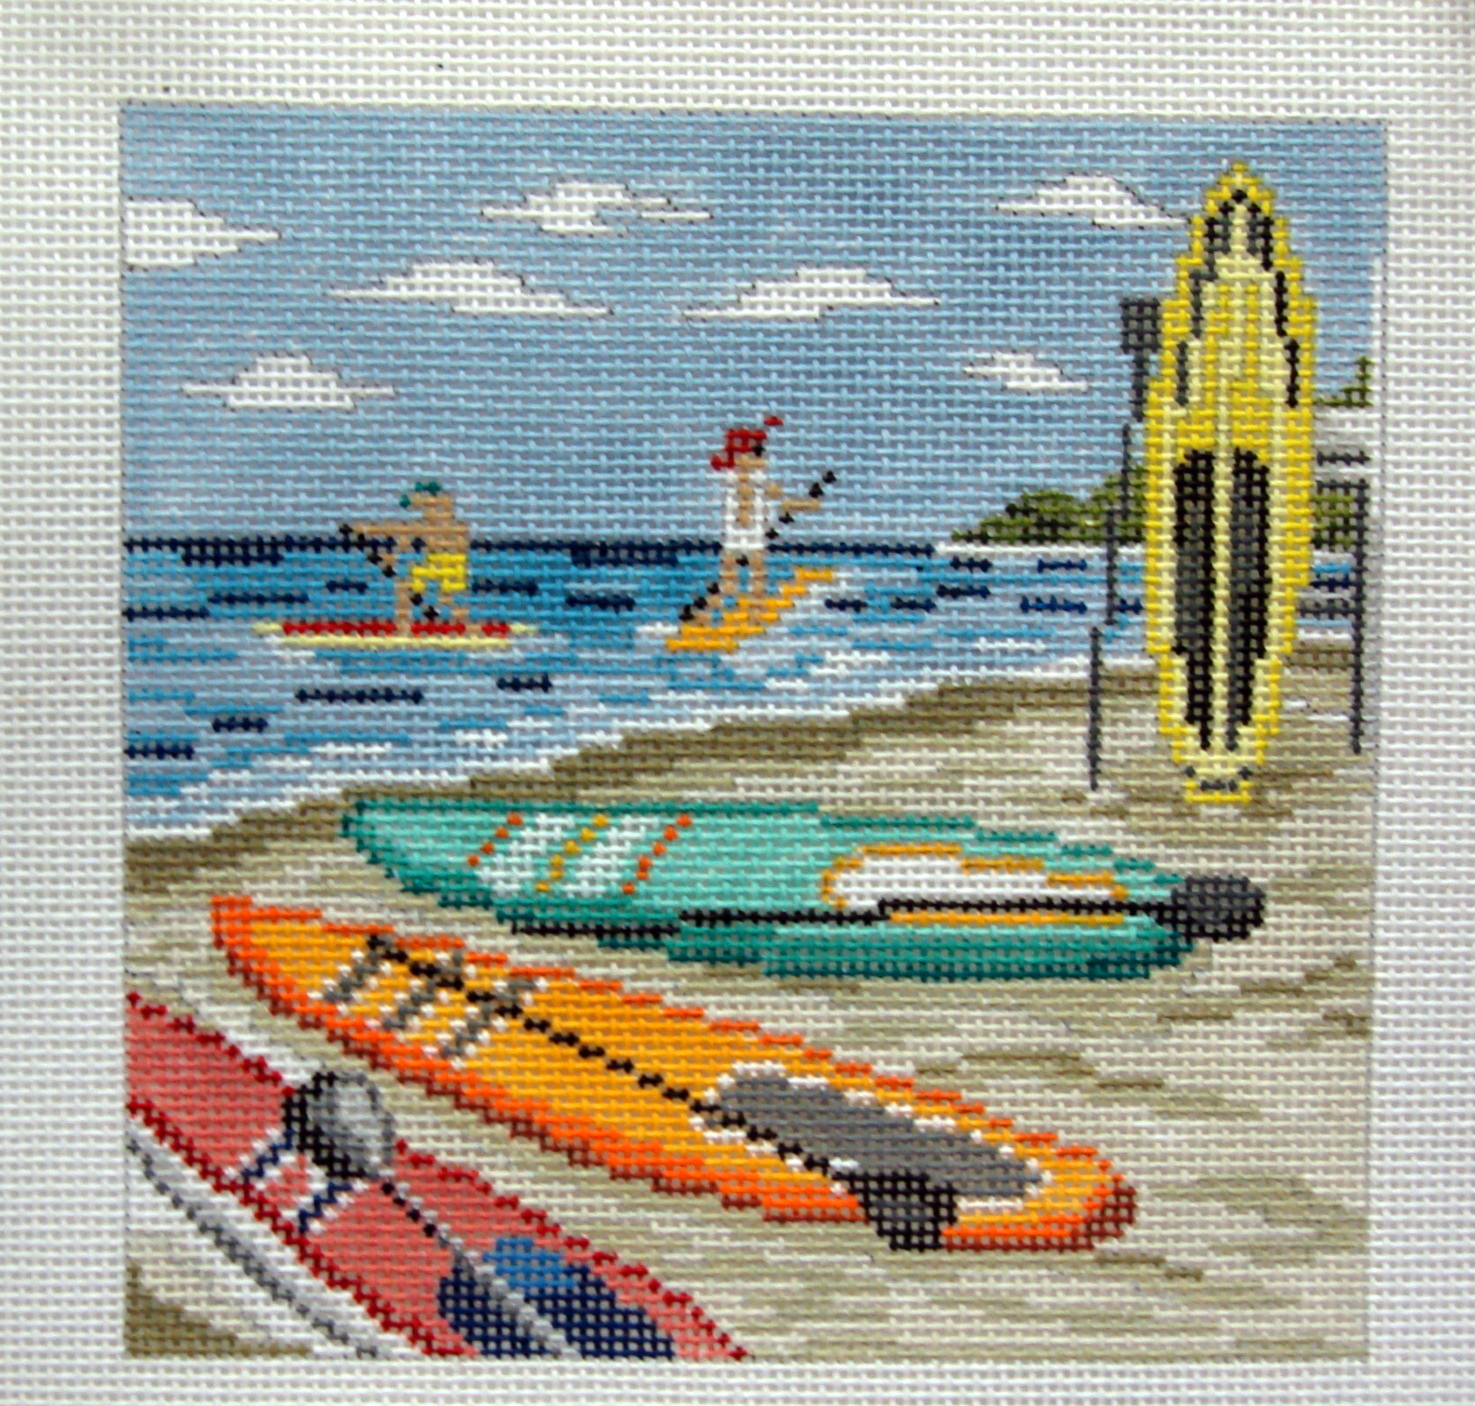 Paddle Boarding    (handpainted from Needle Crossing) 18*702